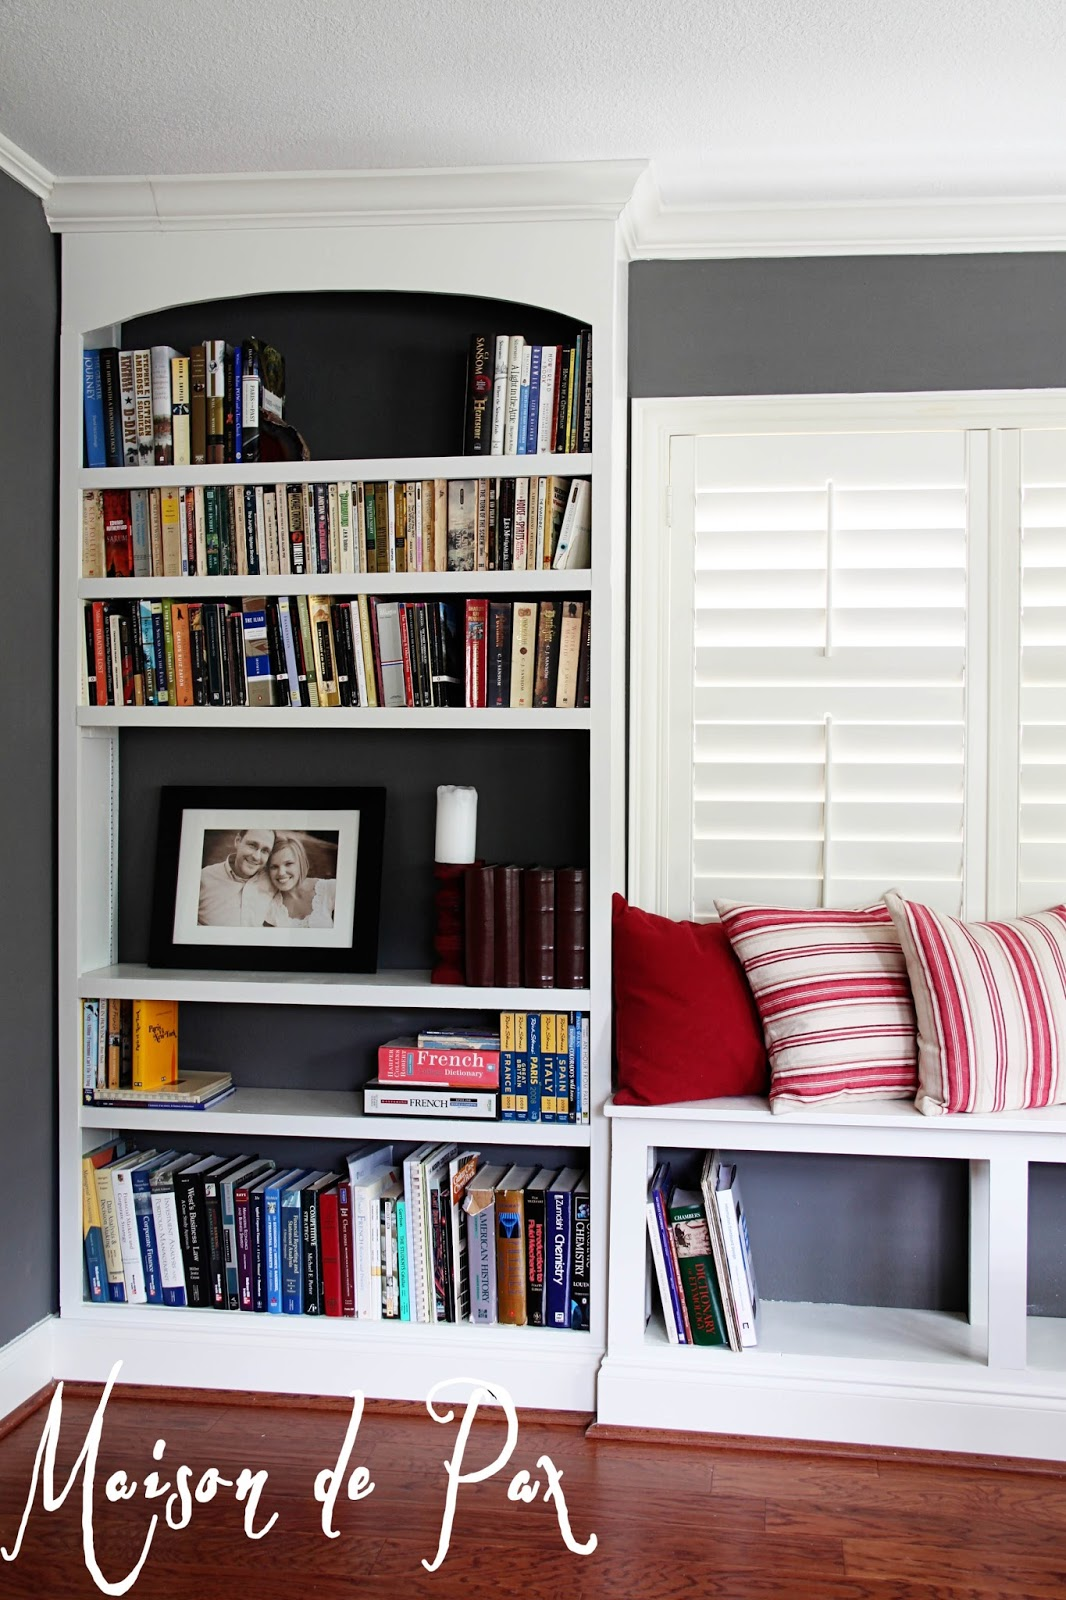 Book Shelfs Diy Built-in Bookshelves - Maison De Pax